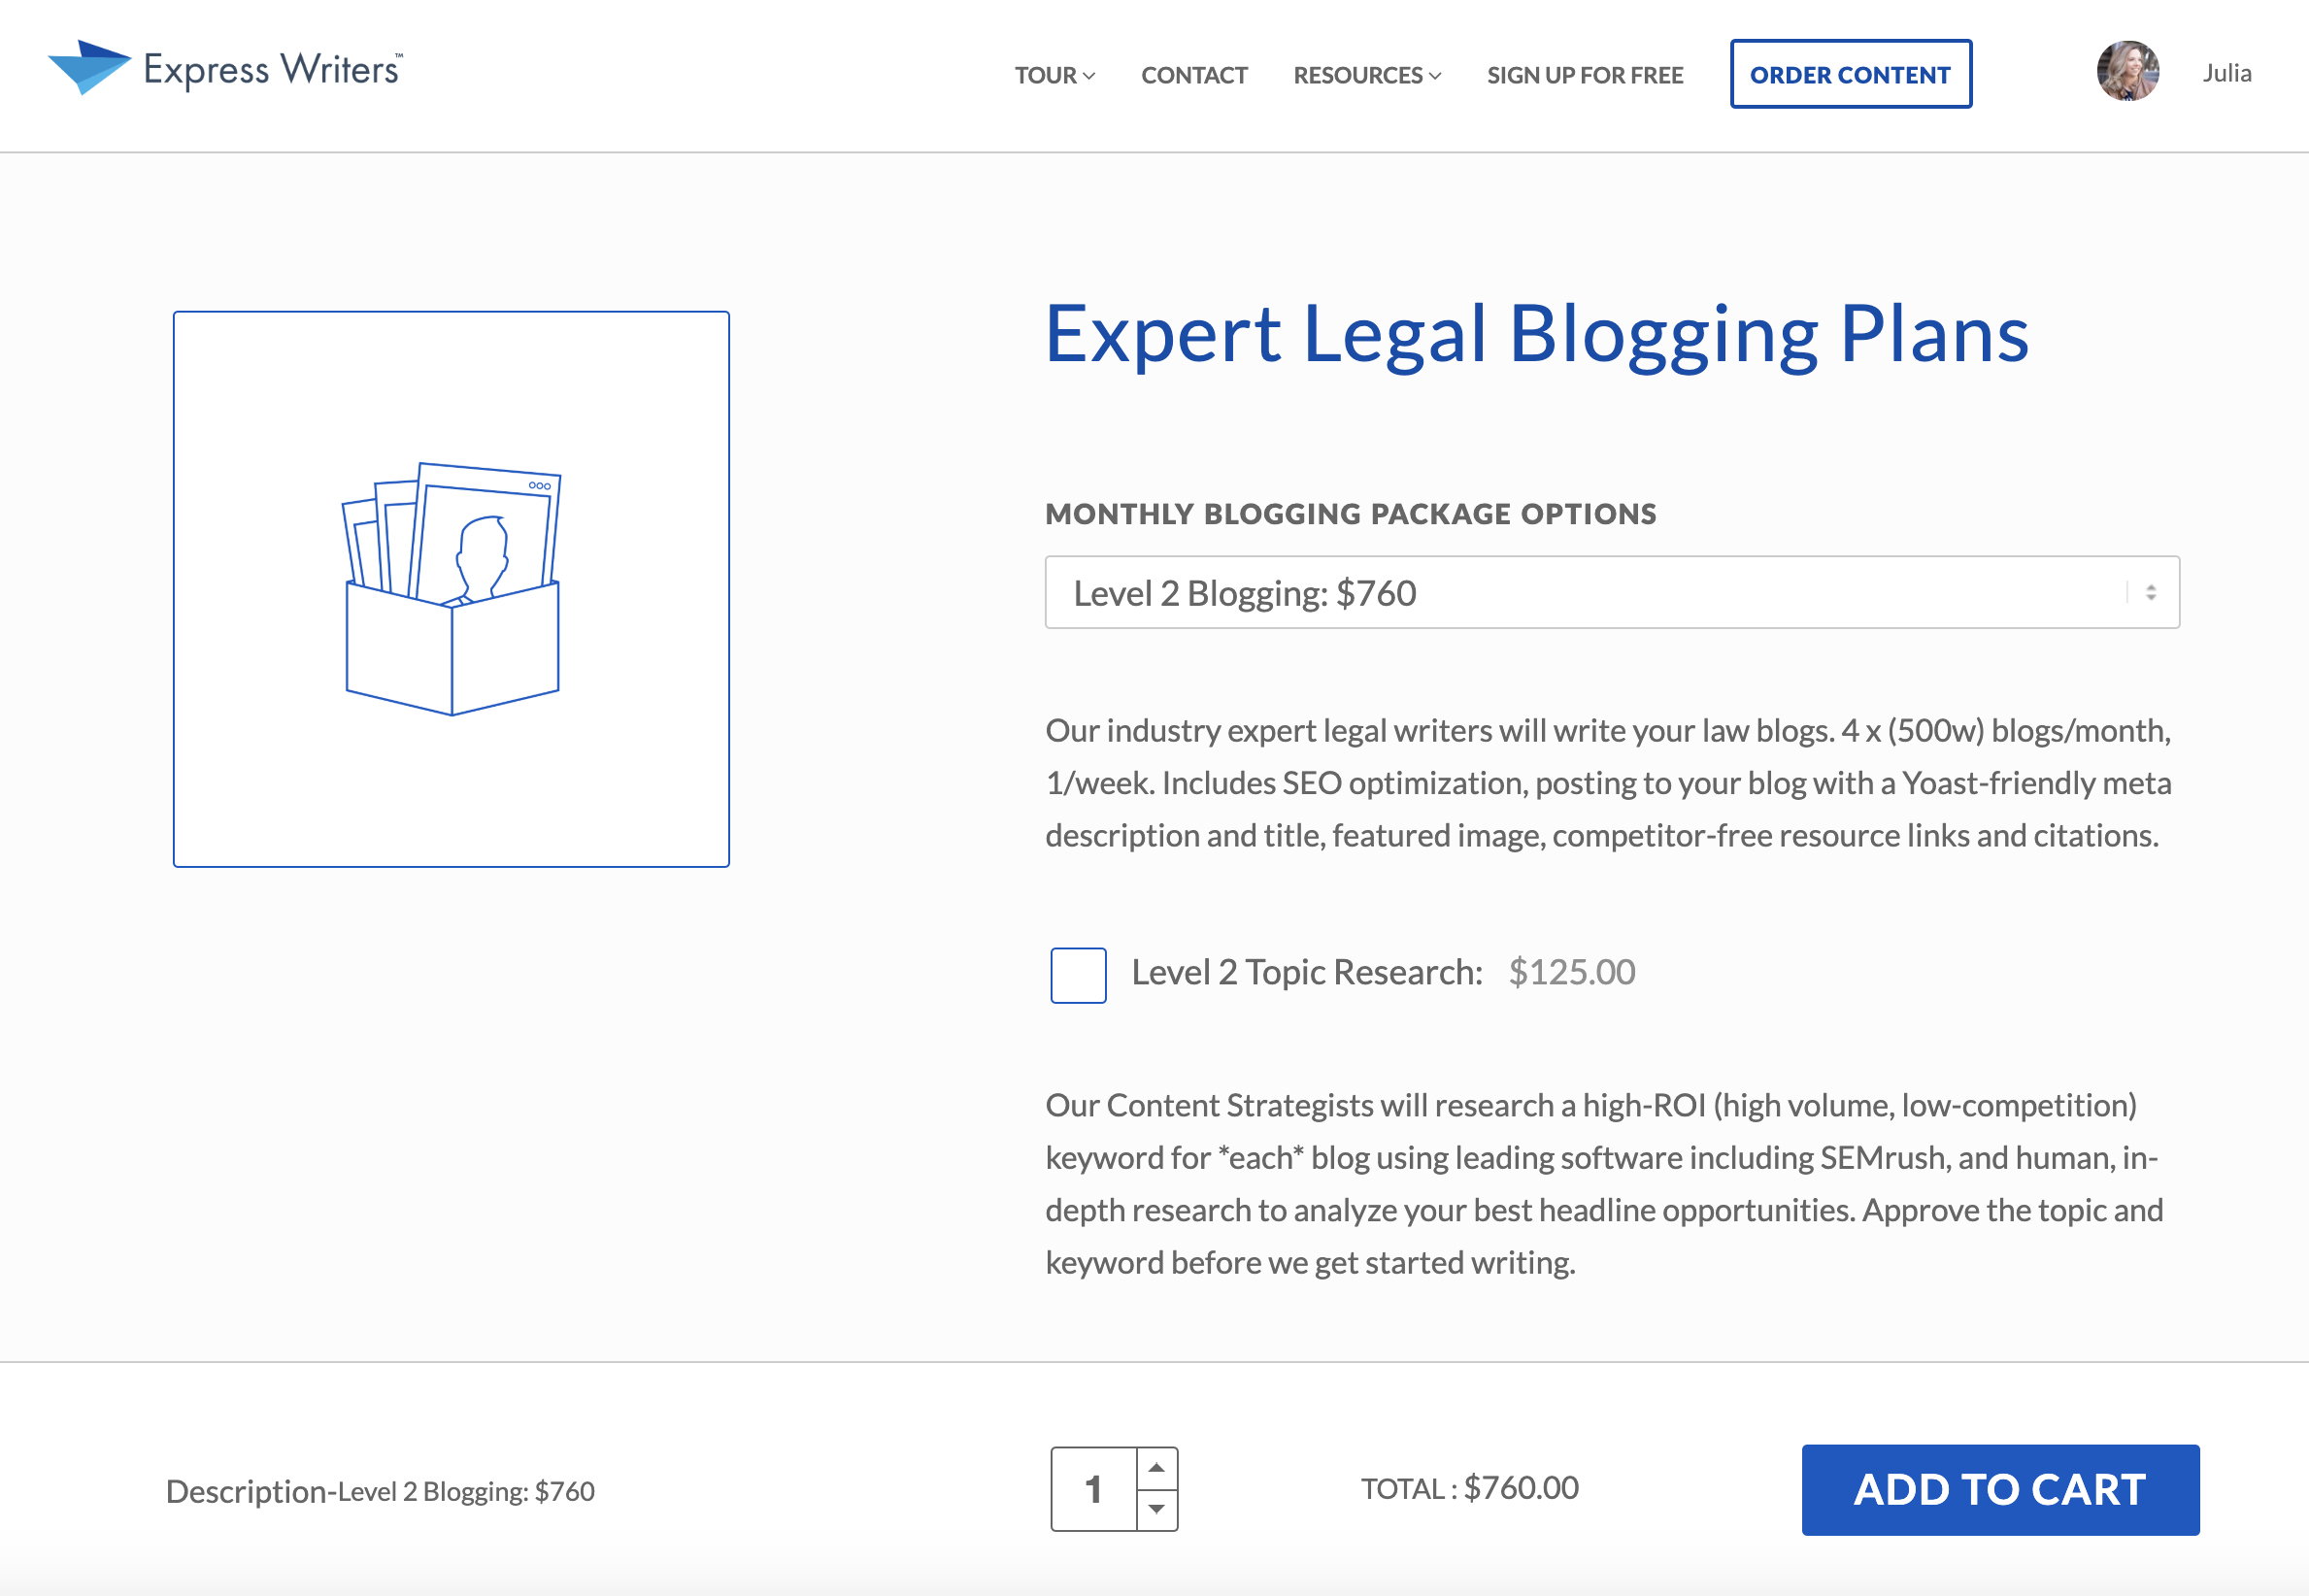 expert legal blog plans express writers